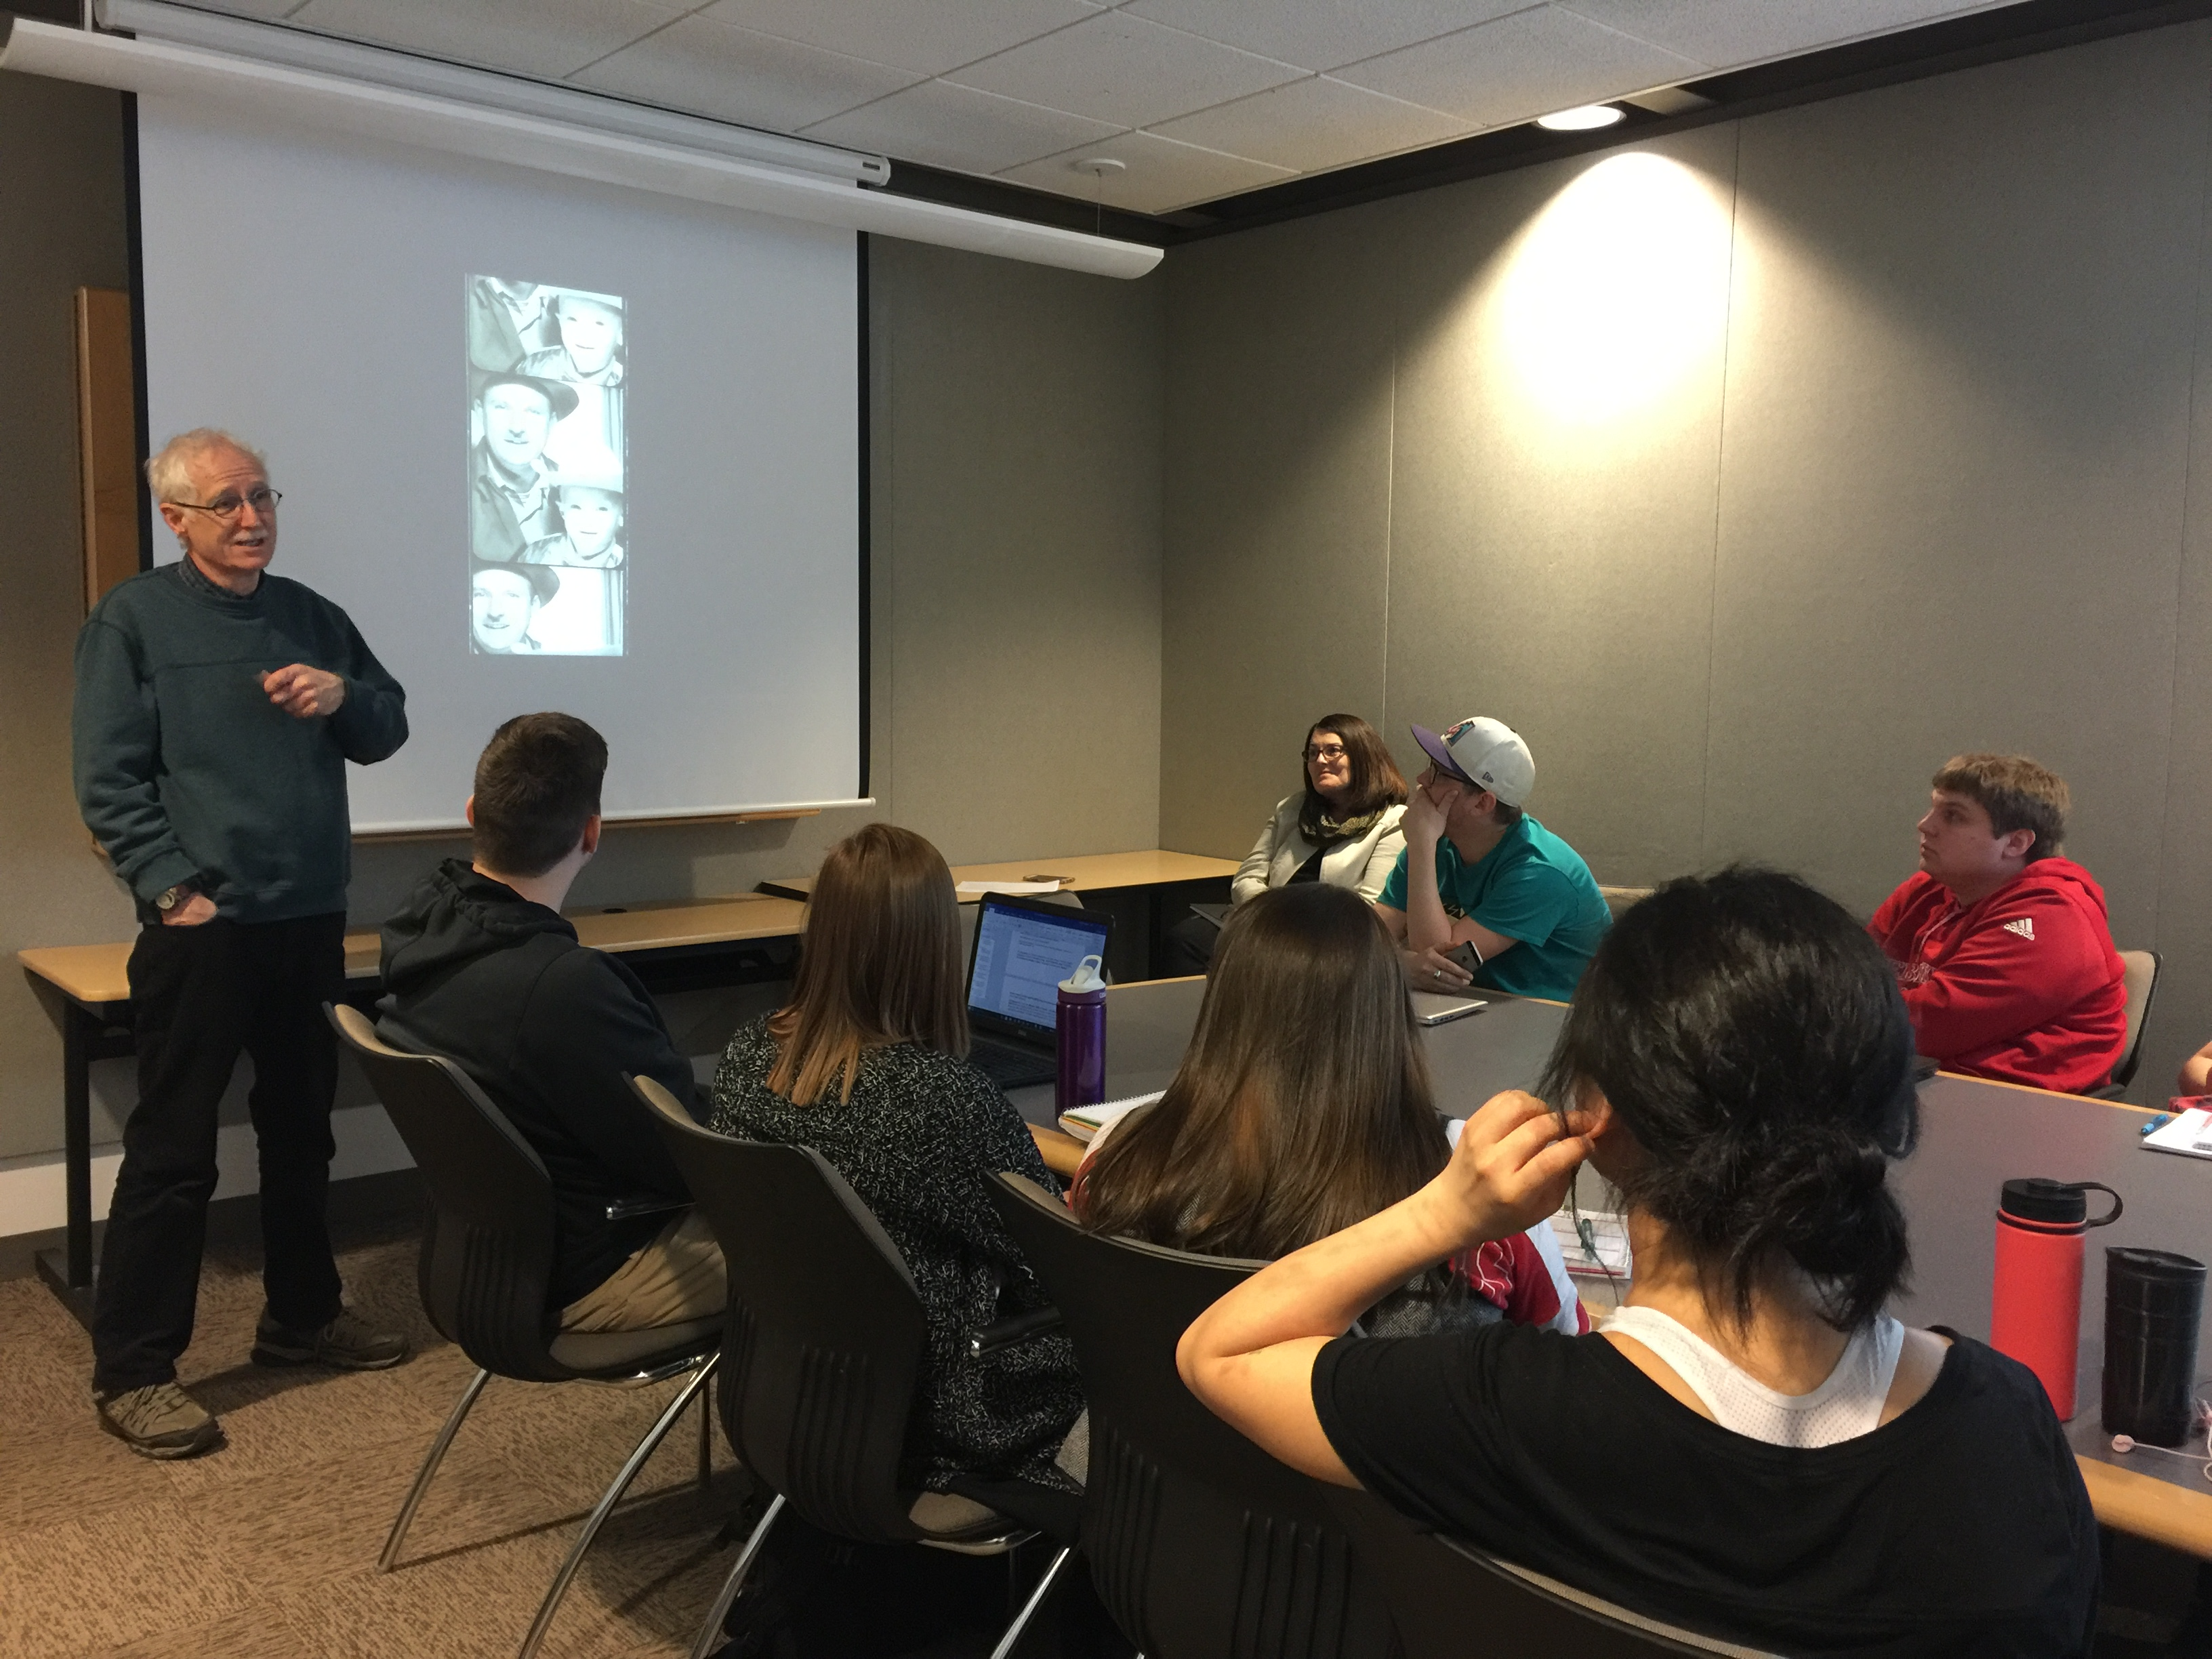 Photographer Jim Lommasson discusses his storytelling projects with students in the Nebraska Mosaic class. (Photo by Abby Groth)